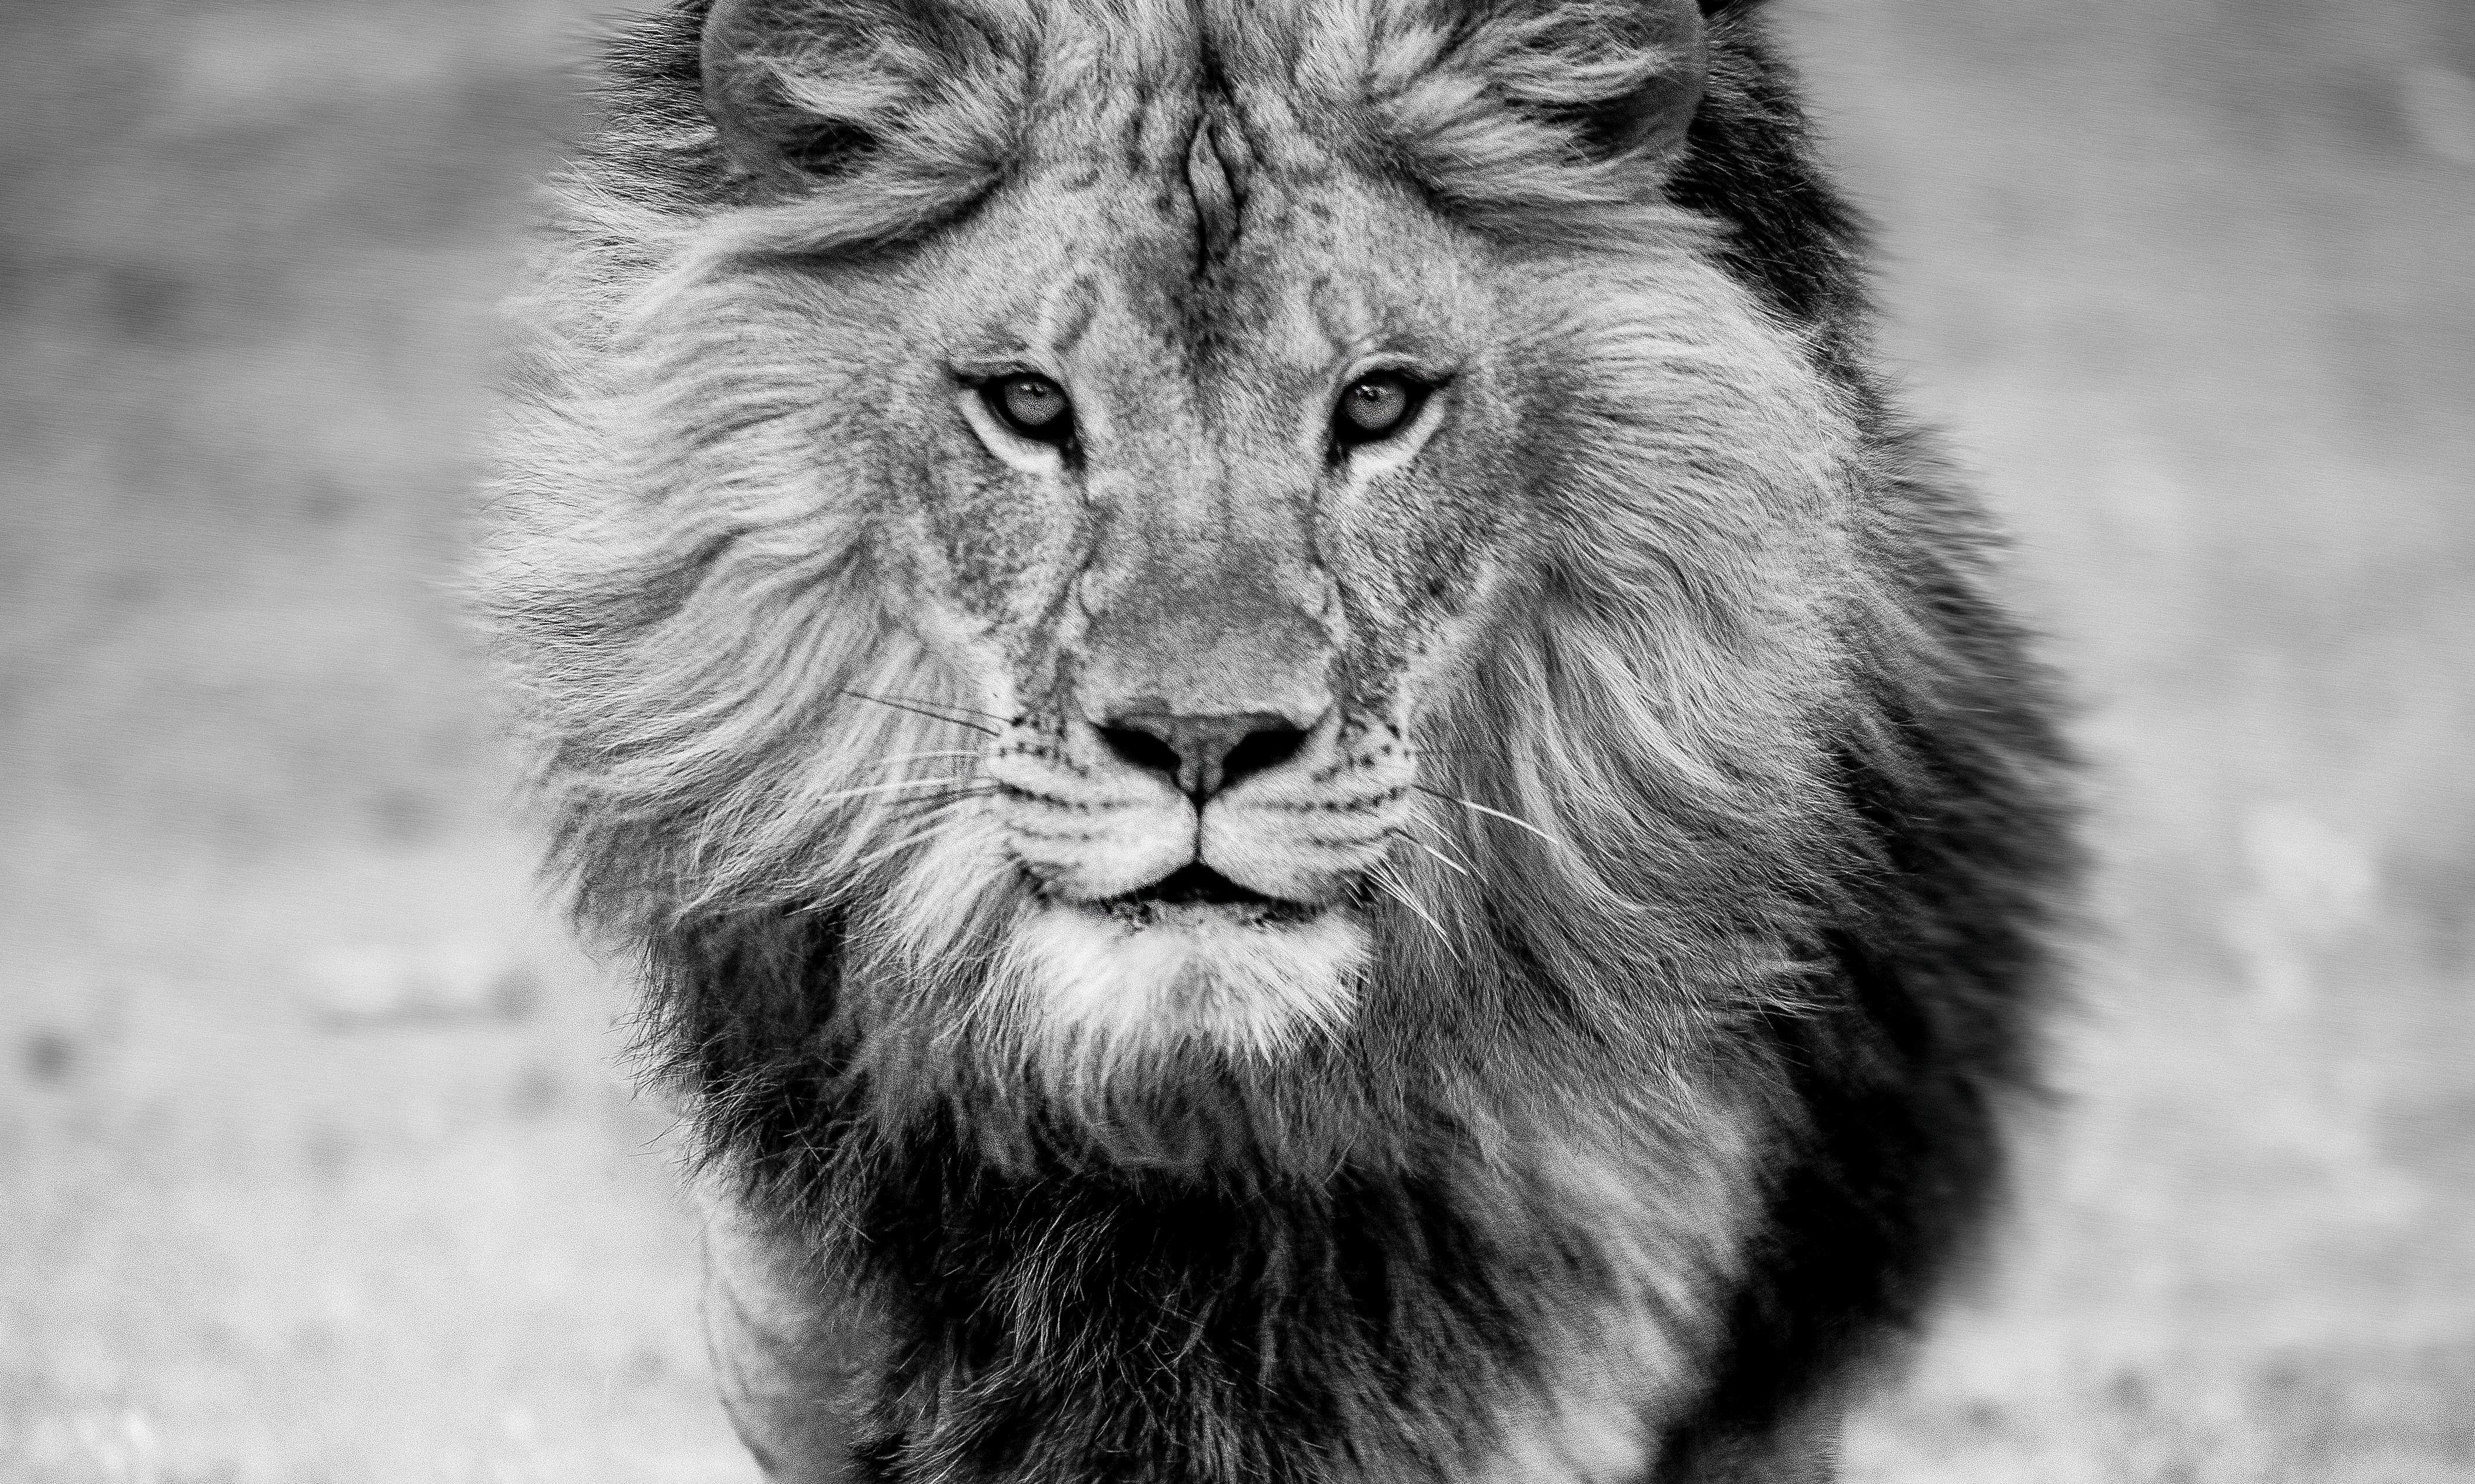 Shane Russeck - Panthera Leo - 40x60 Contemporary Black and White  Photography, Lion For Sale at 1stDibs